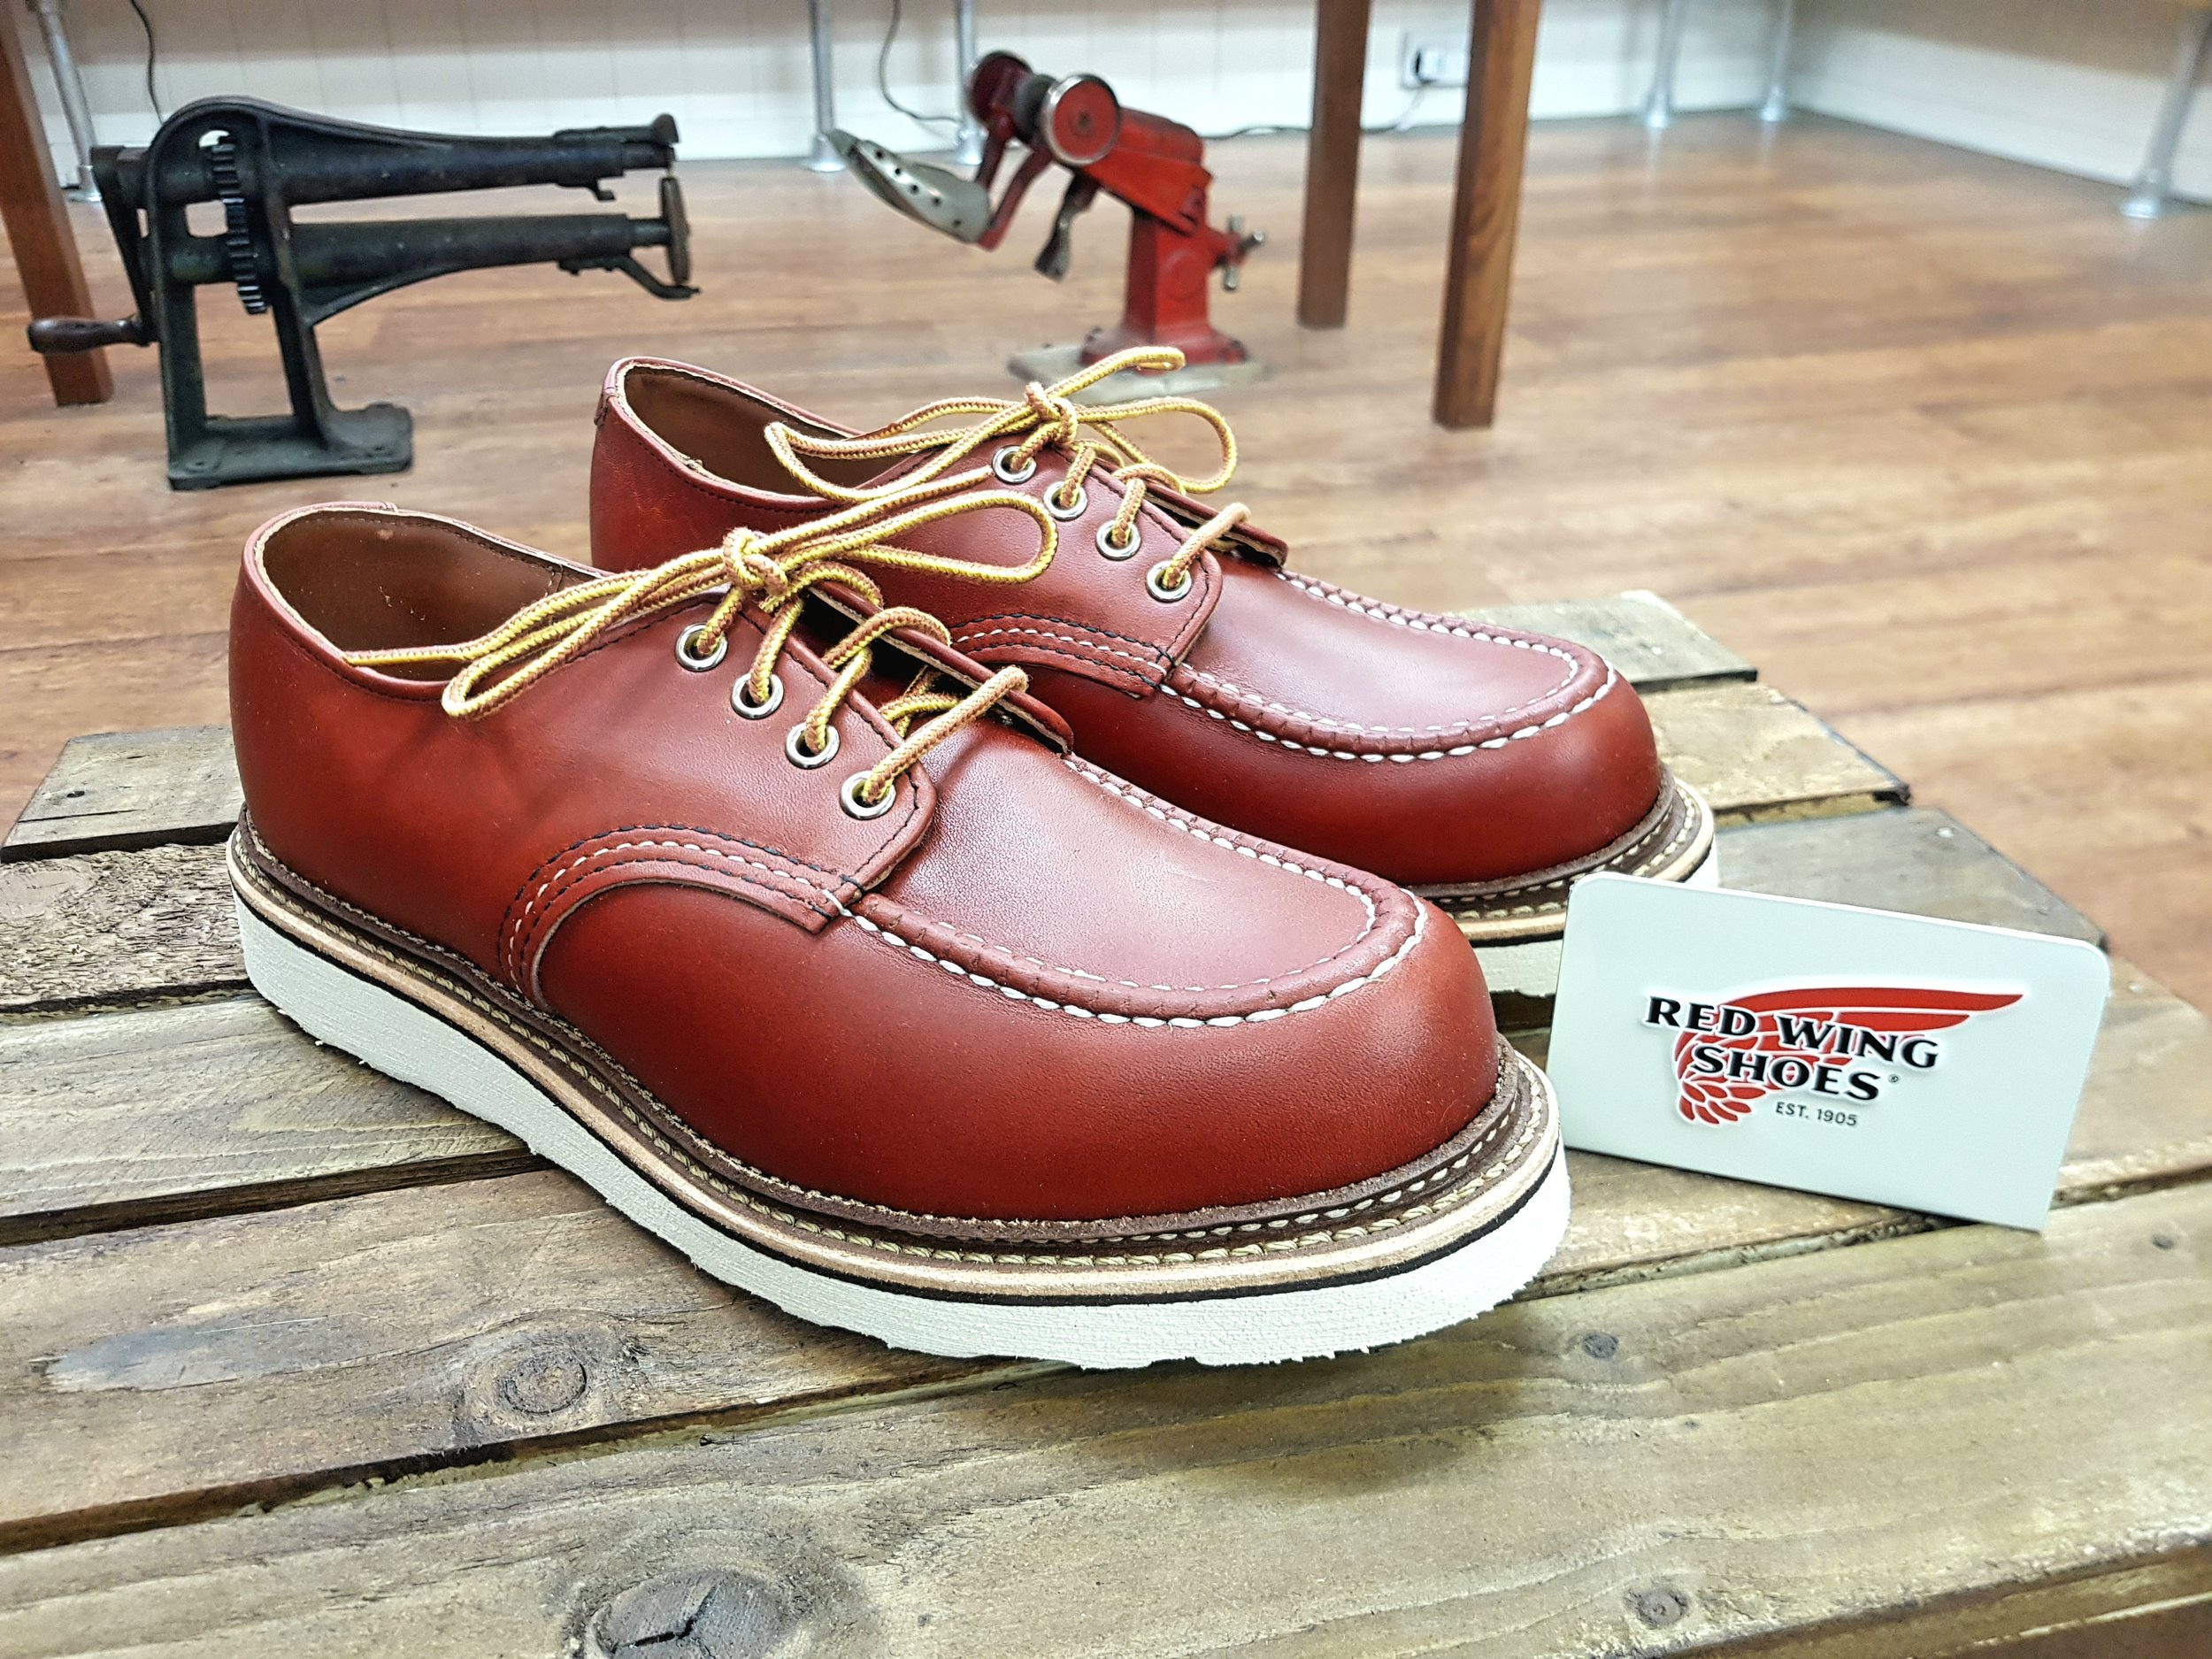 RED WING: Classic Moc Toe 8109 Oxford